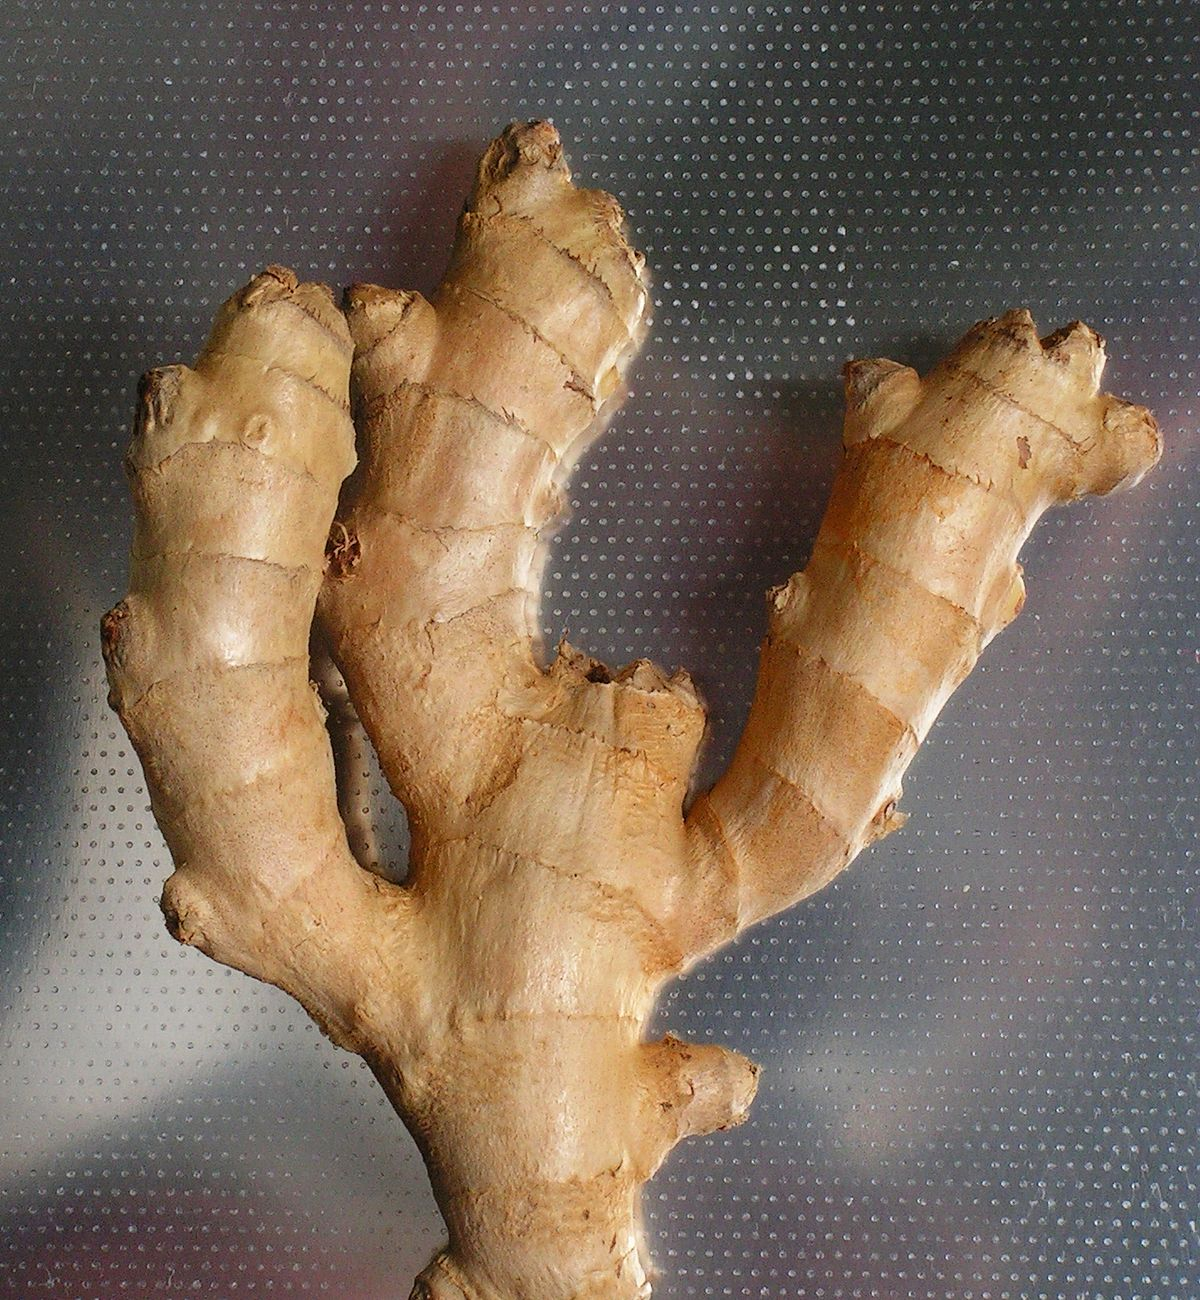 ginger root - Wiktionary